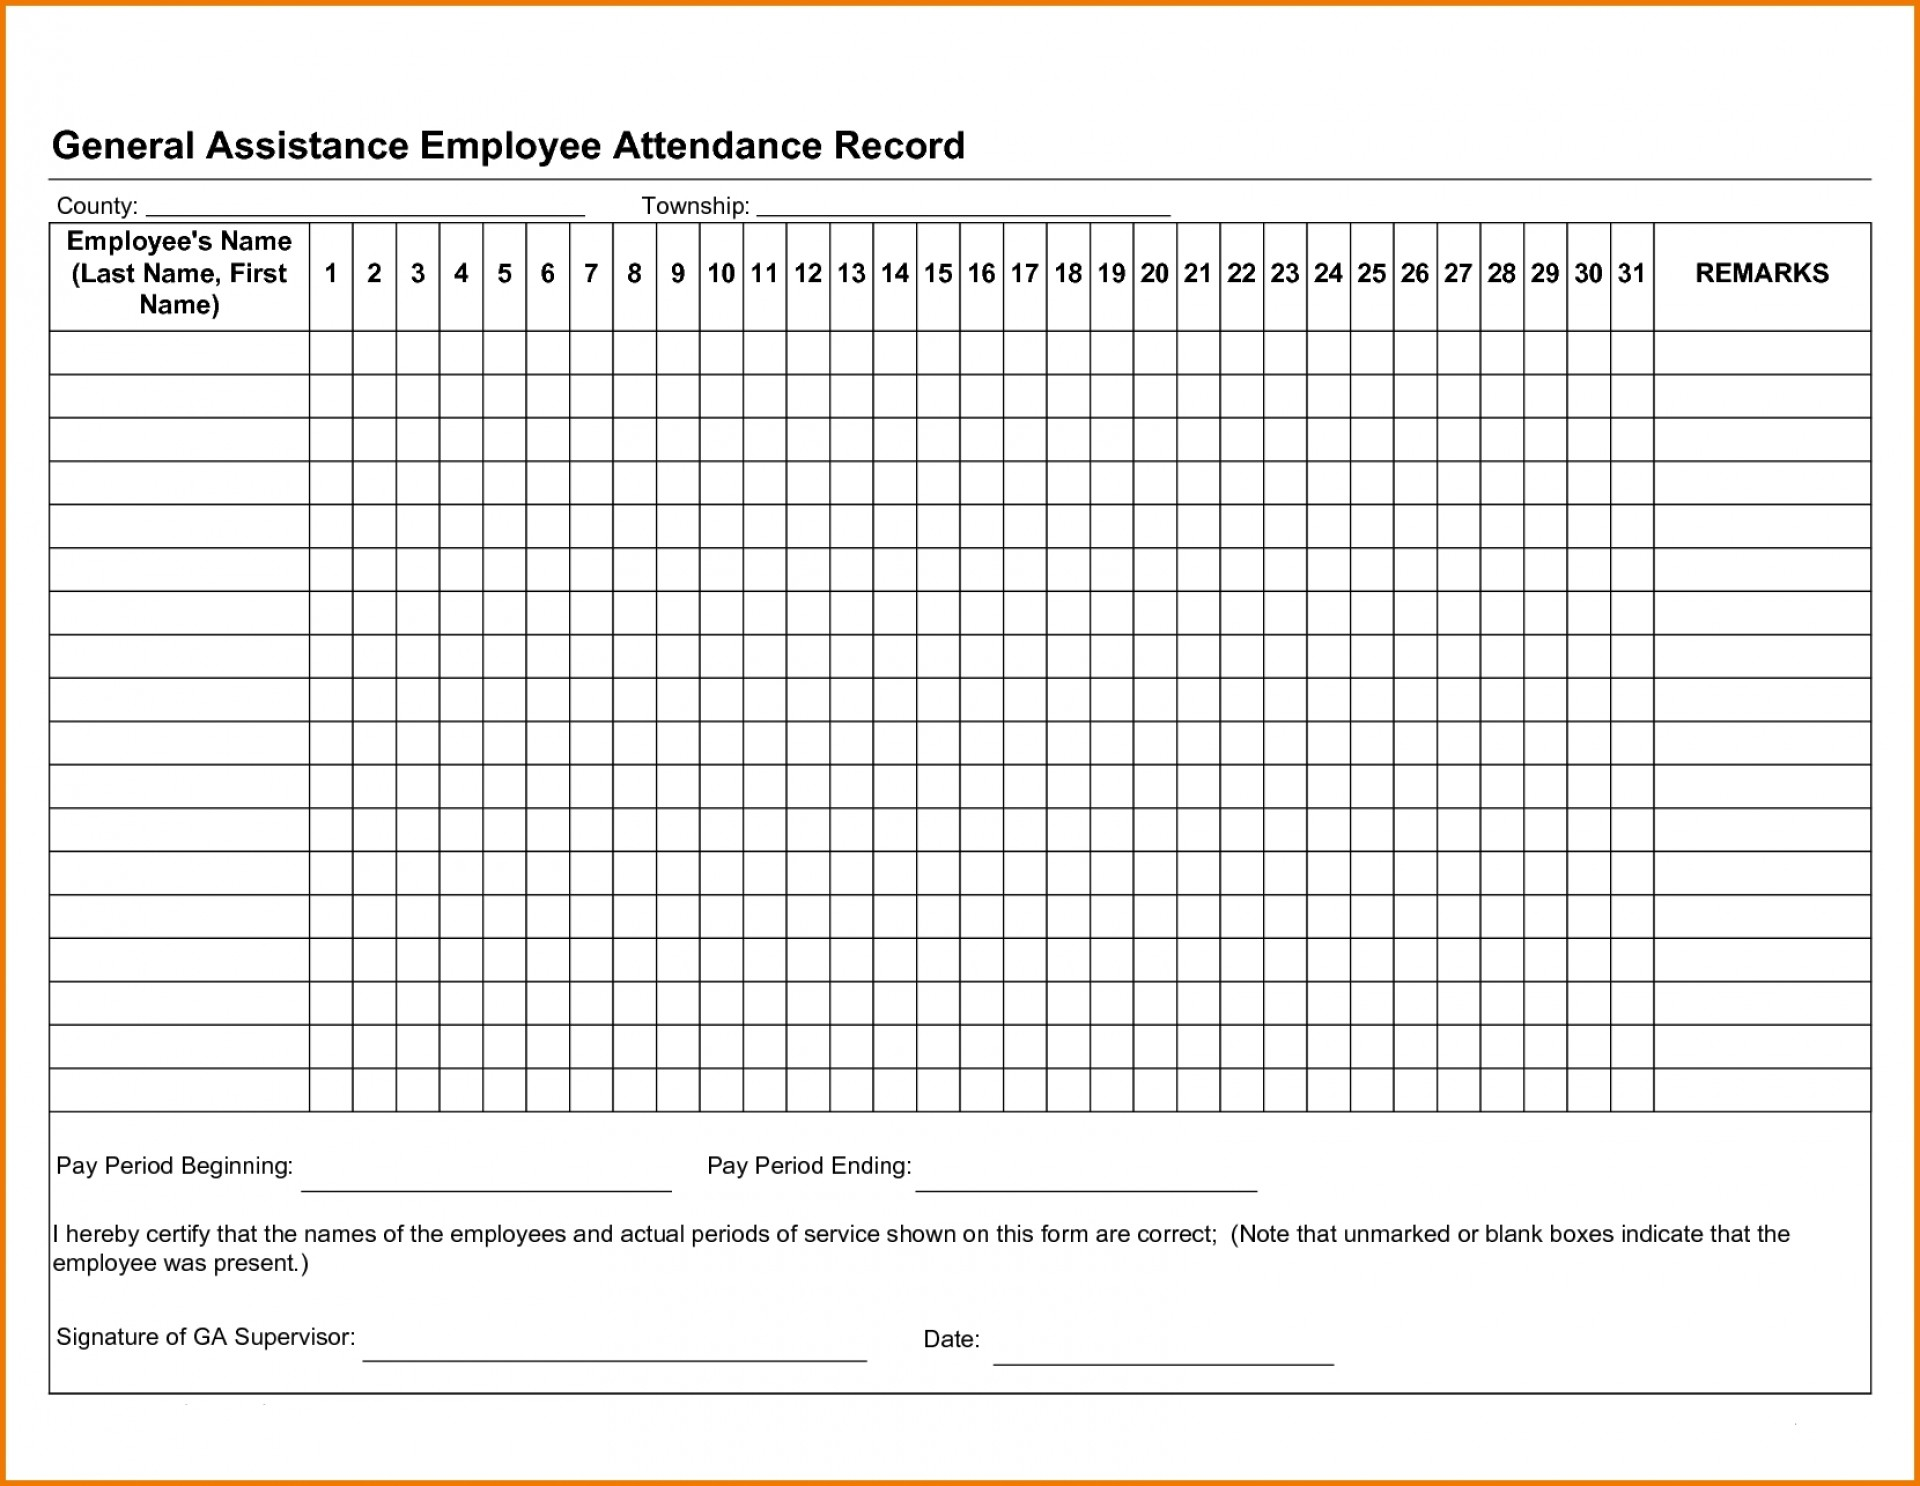 002 Employee Attendance Record Template Excel Maxresdefault